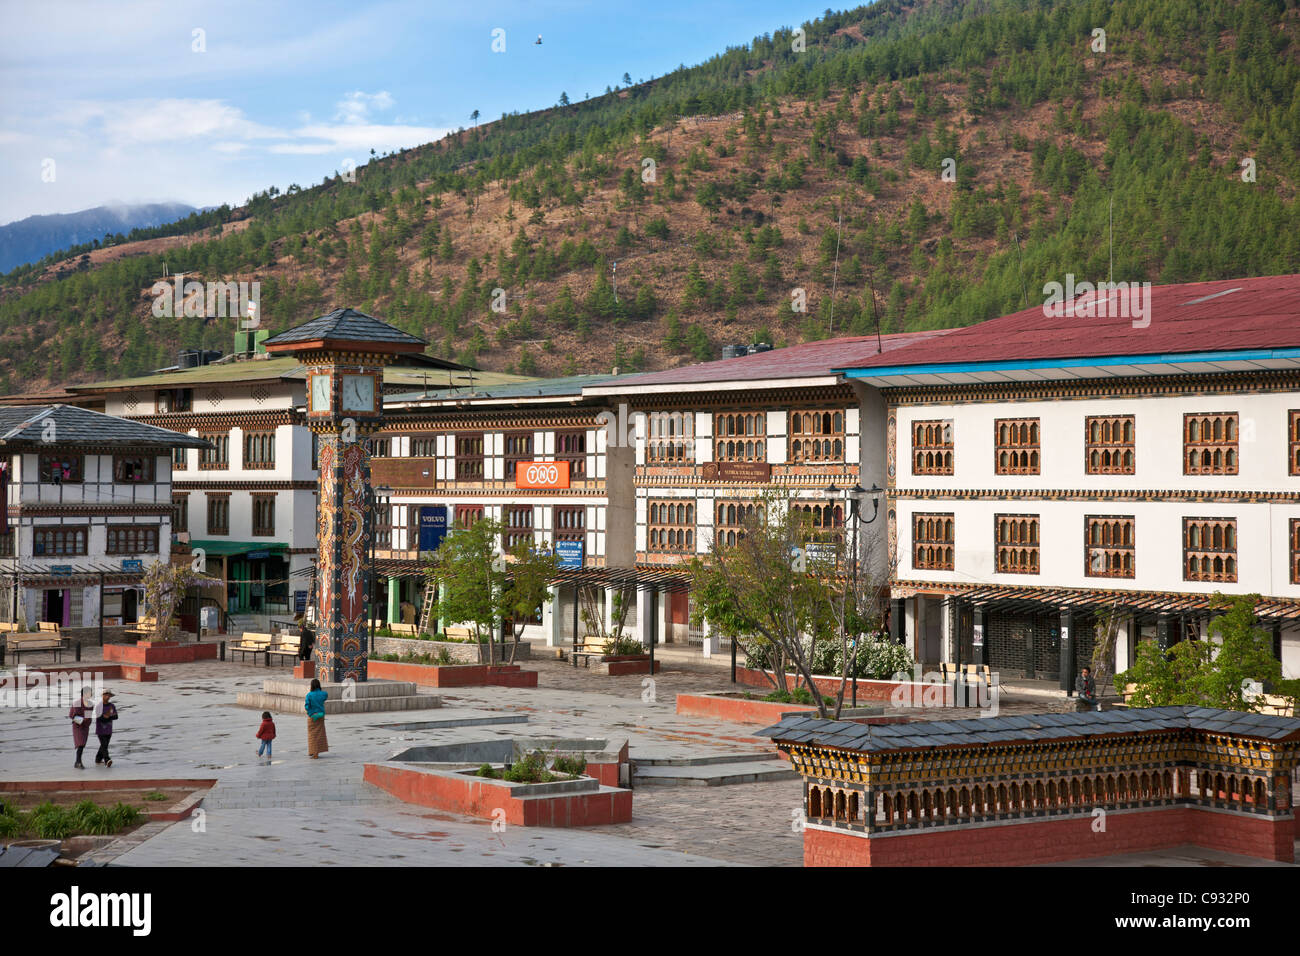 The attractive Clocktower Square situated in the centre of Thimphu. - Stock Image